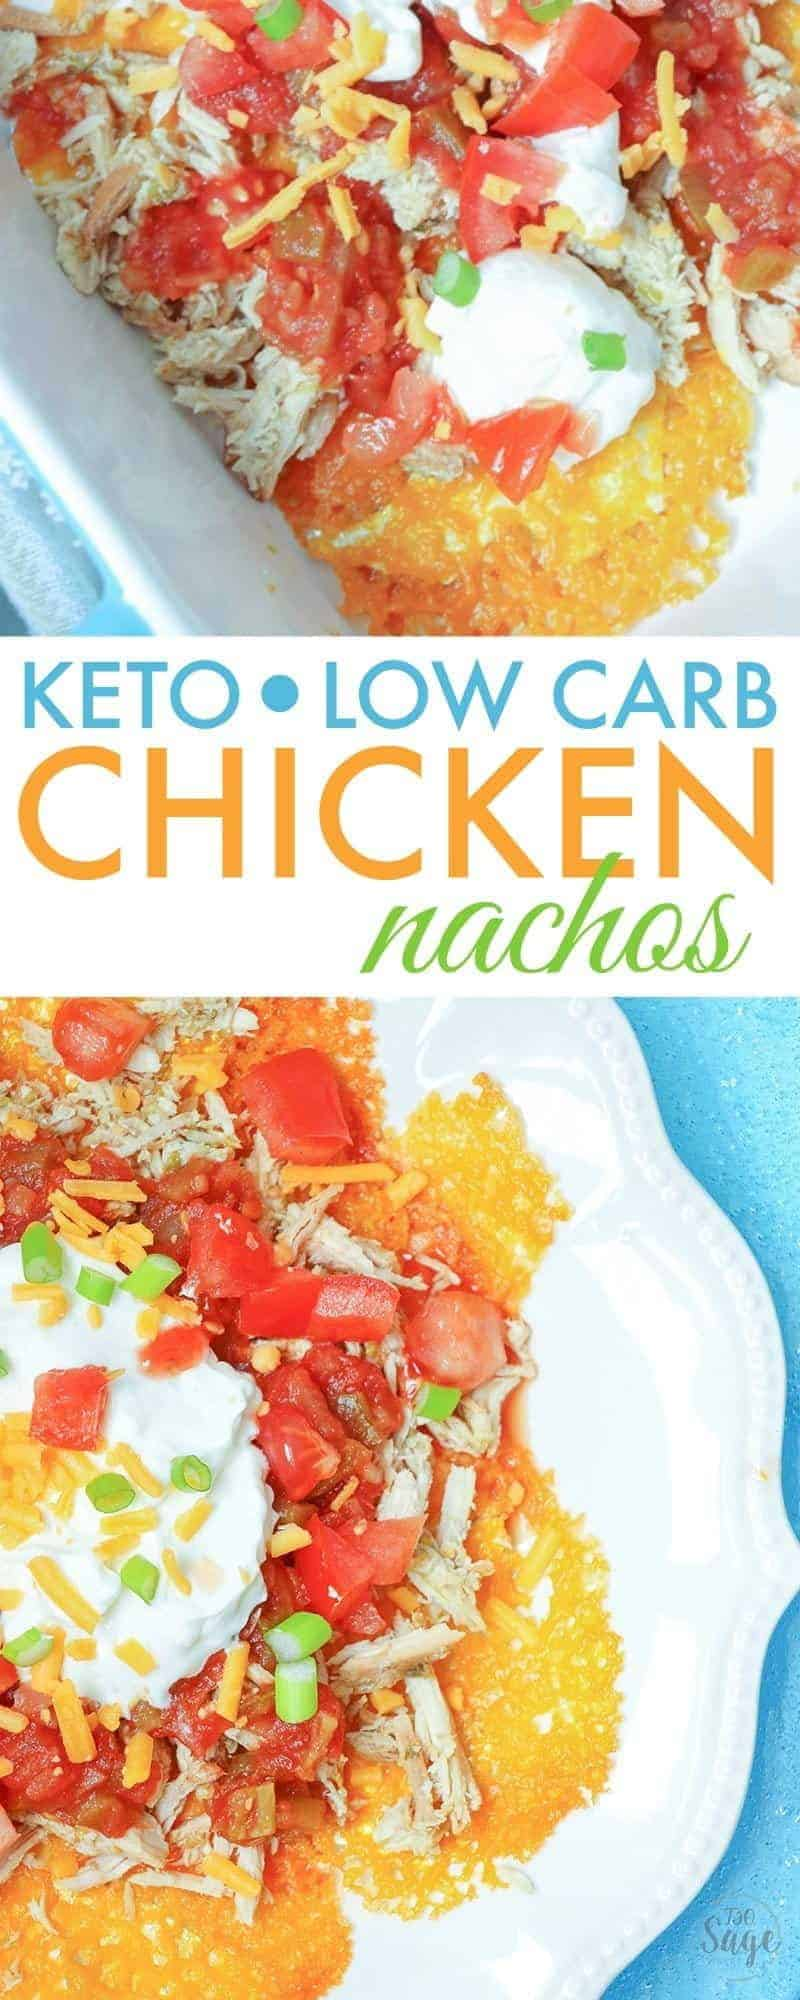 Make delicious keto nachos with chicken in the slow cooker. These low carb nachos are delicious and use cheddar cheese crisps instead of traditional tortilla chips. Add your favorite toppings like sour cream, tomatoes and onions and you won't even miss the corn chips. #lowcarb #keto